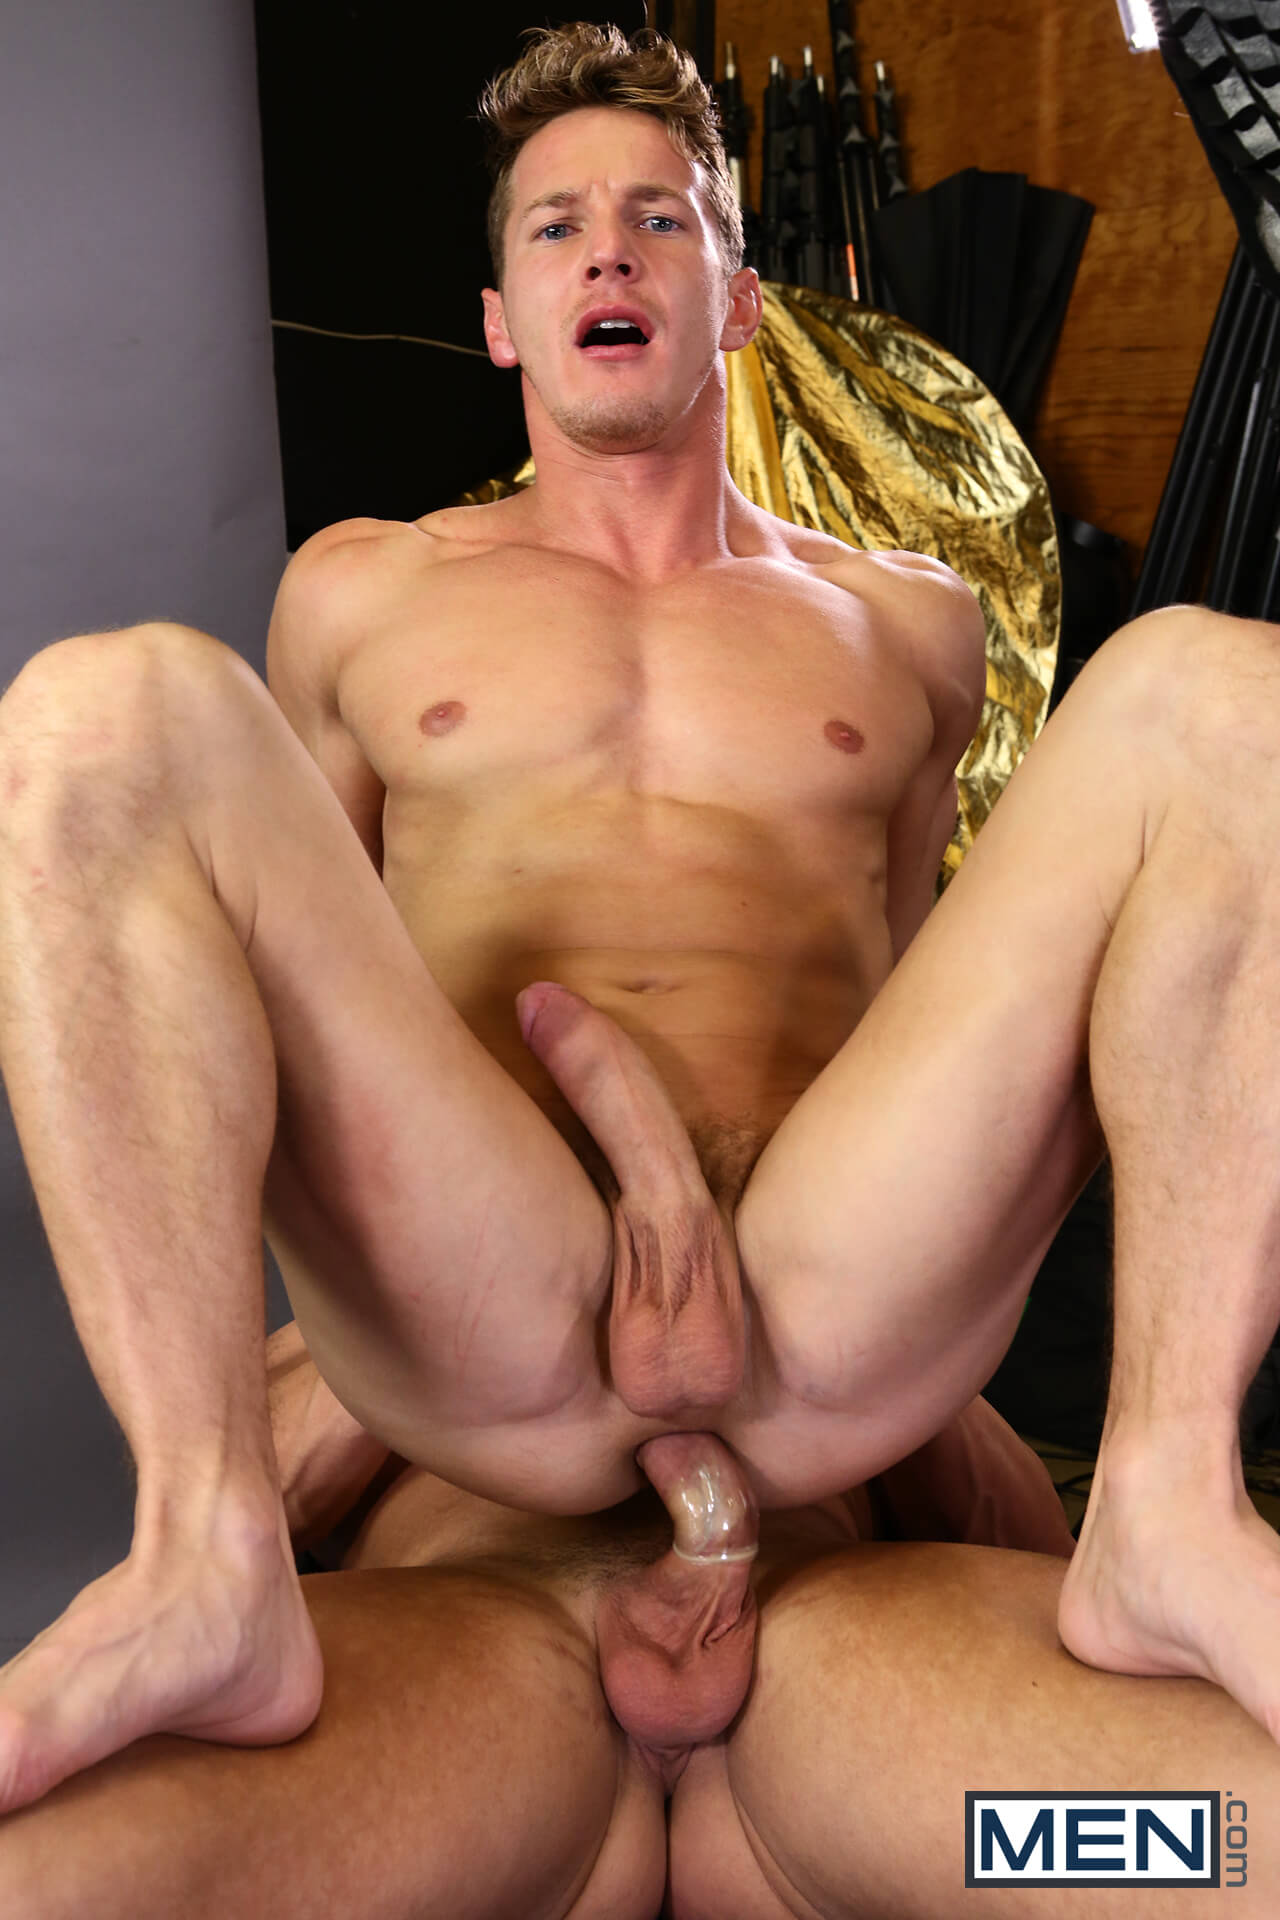 men drill my hole trophy boys part 3 darius ferdynand luke adams gay porn blog image 16